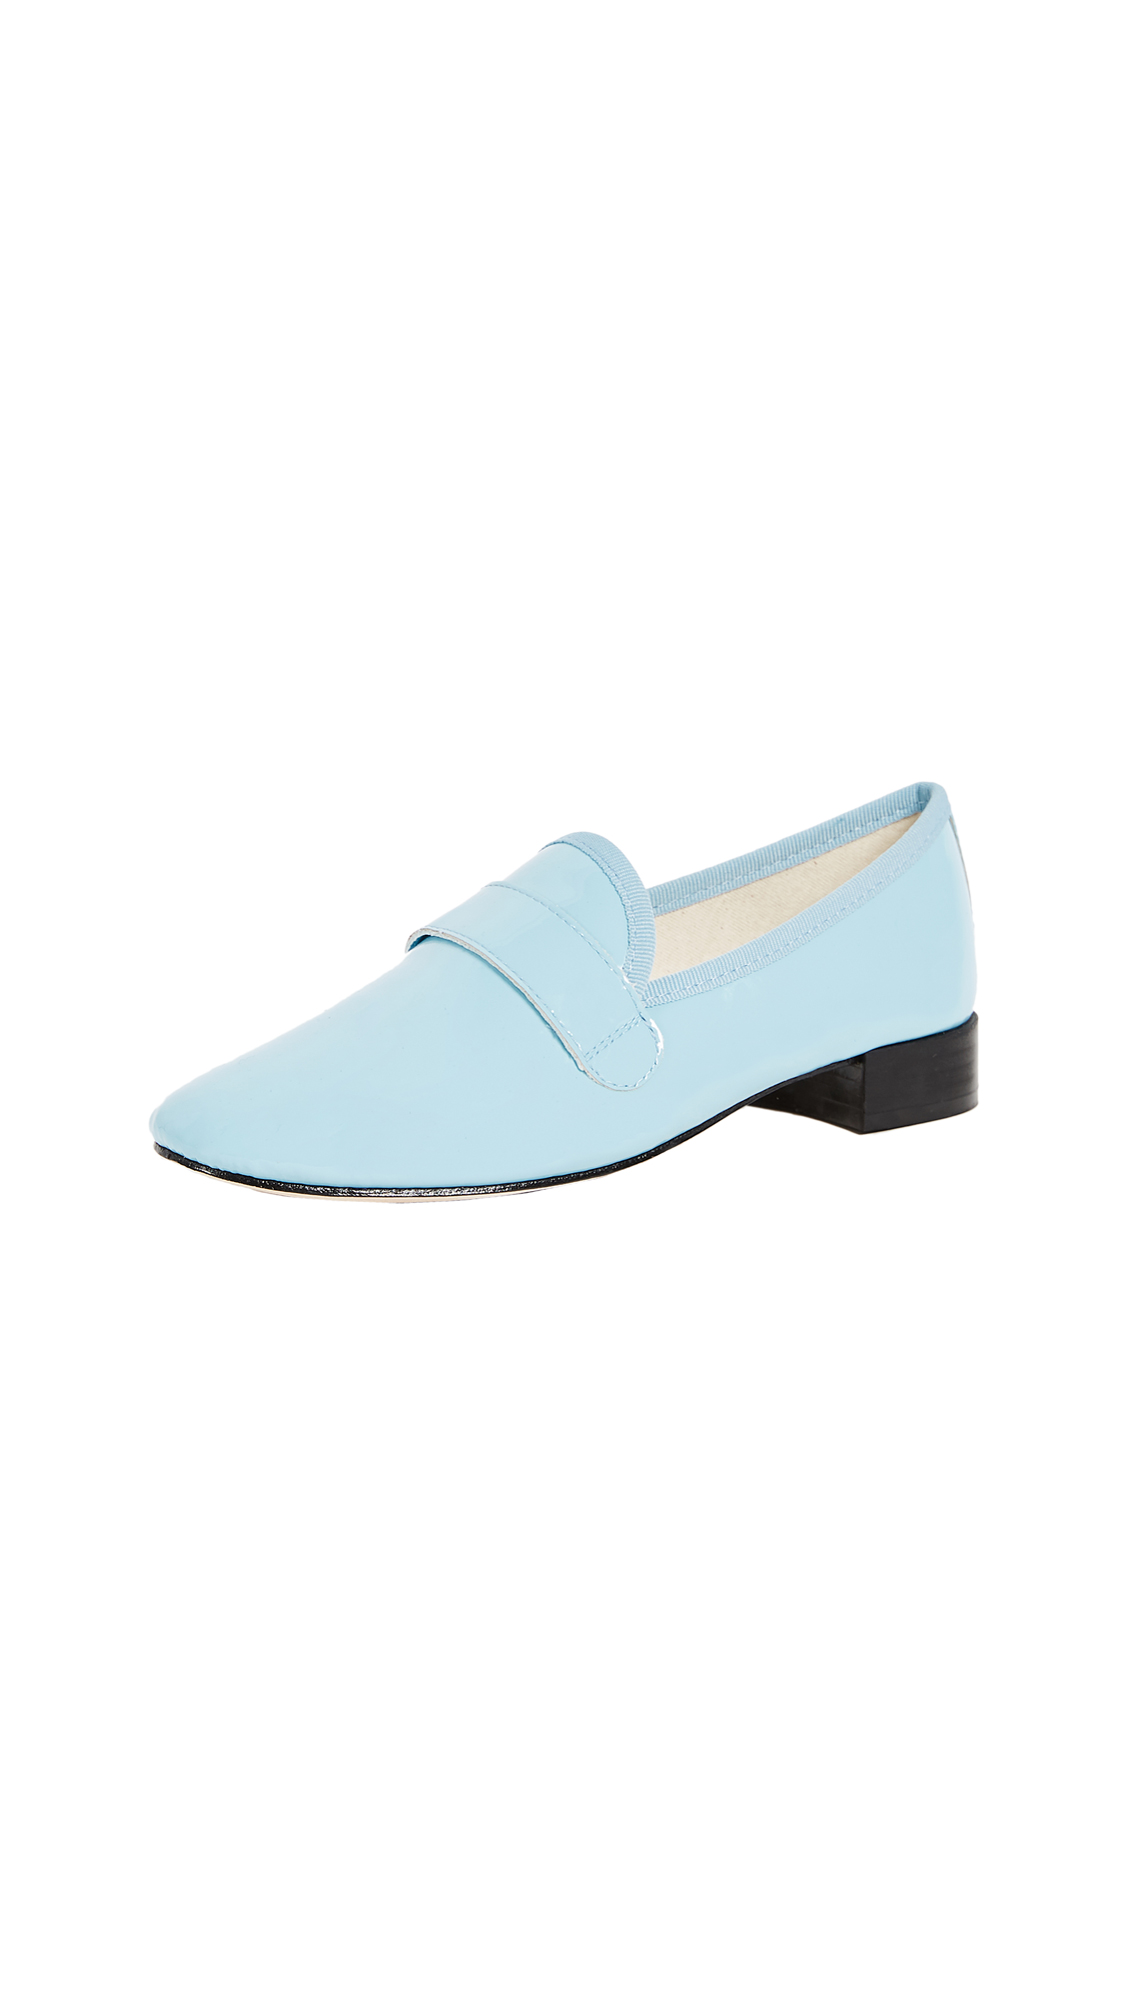 Repetto Michael Loafers - Ciel